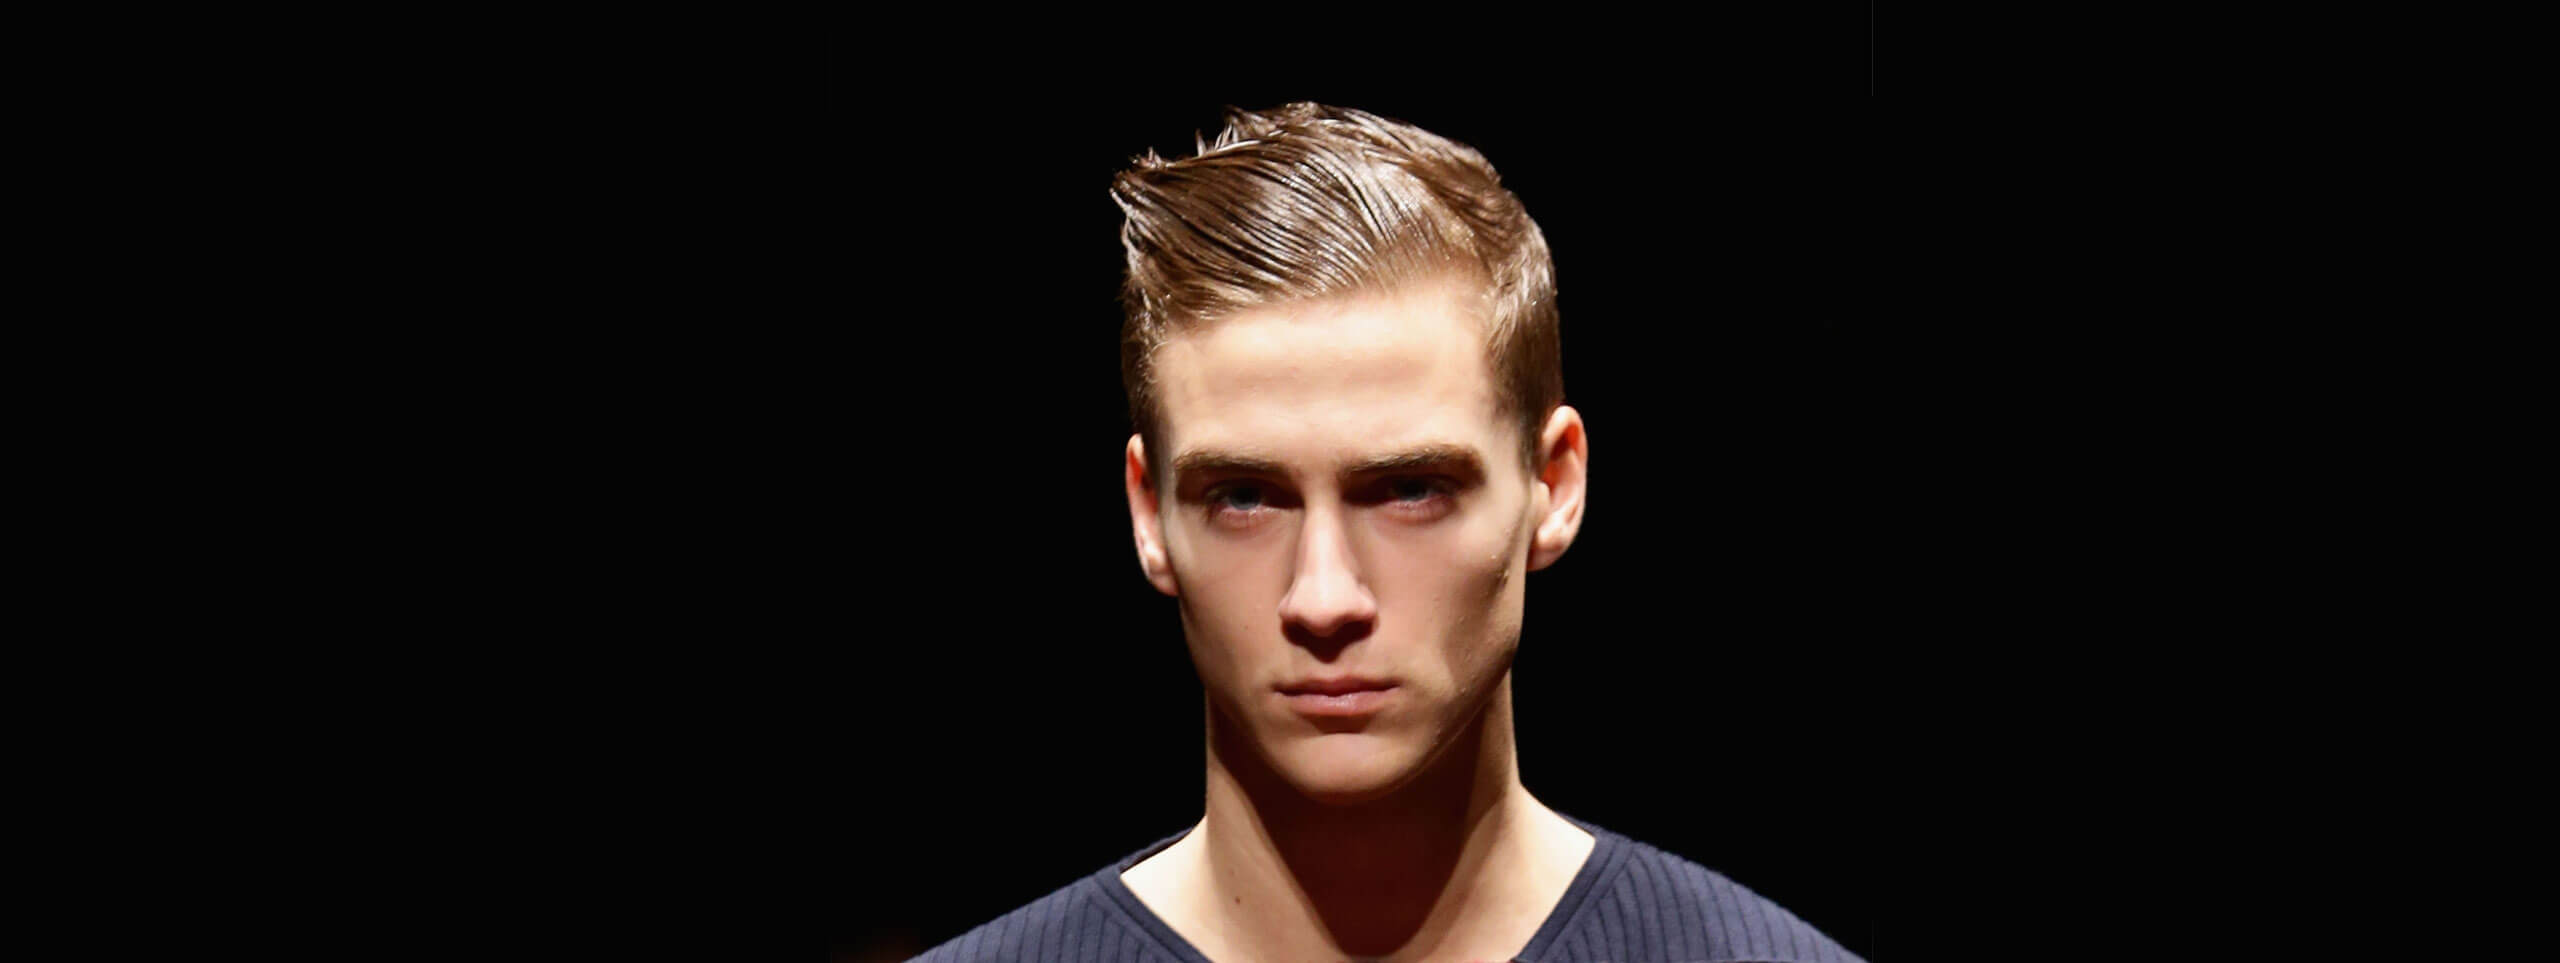 Gel-styled Hairstyles For Men